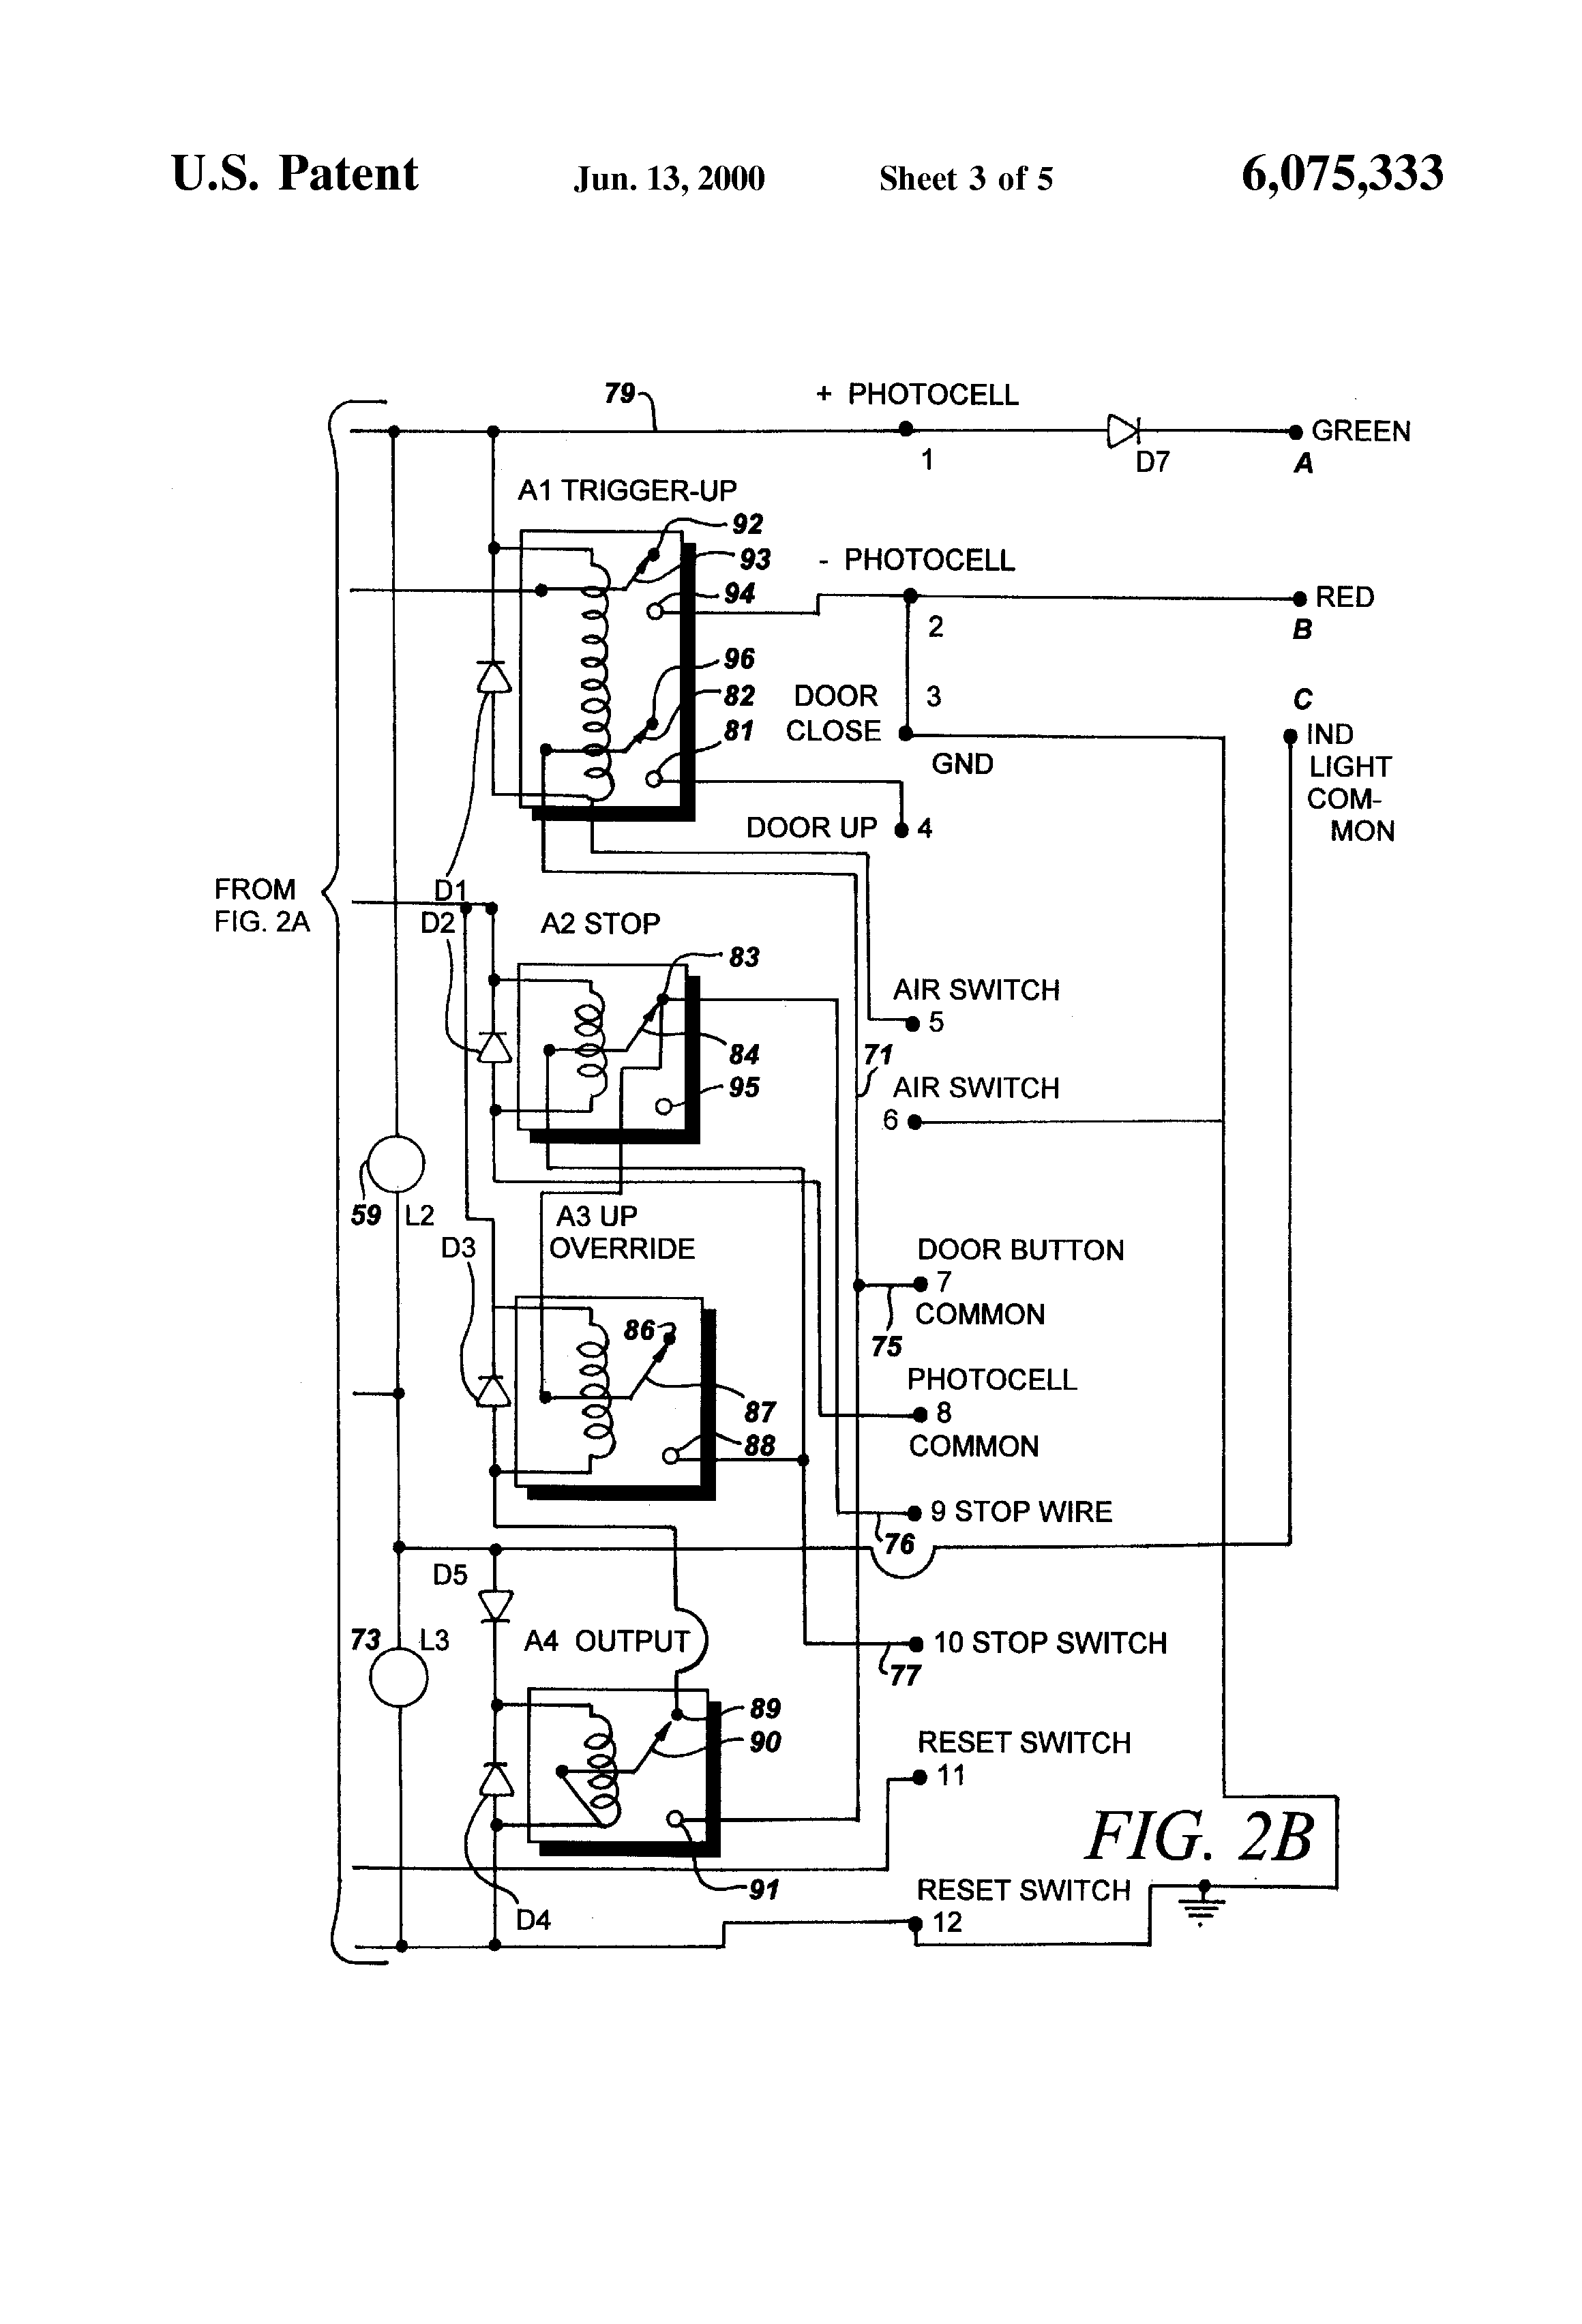 US6075333 3 patent us6075333 kit for retrofitting manually operated electric telectron rd14-6 wiring diagram at eliteediting.co